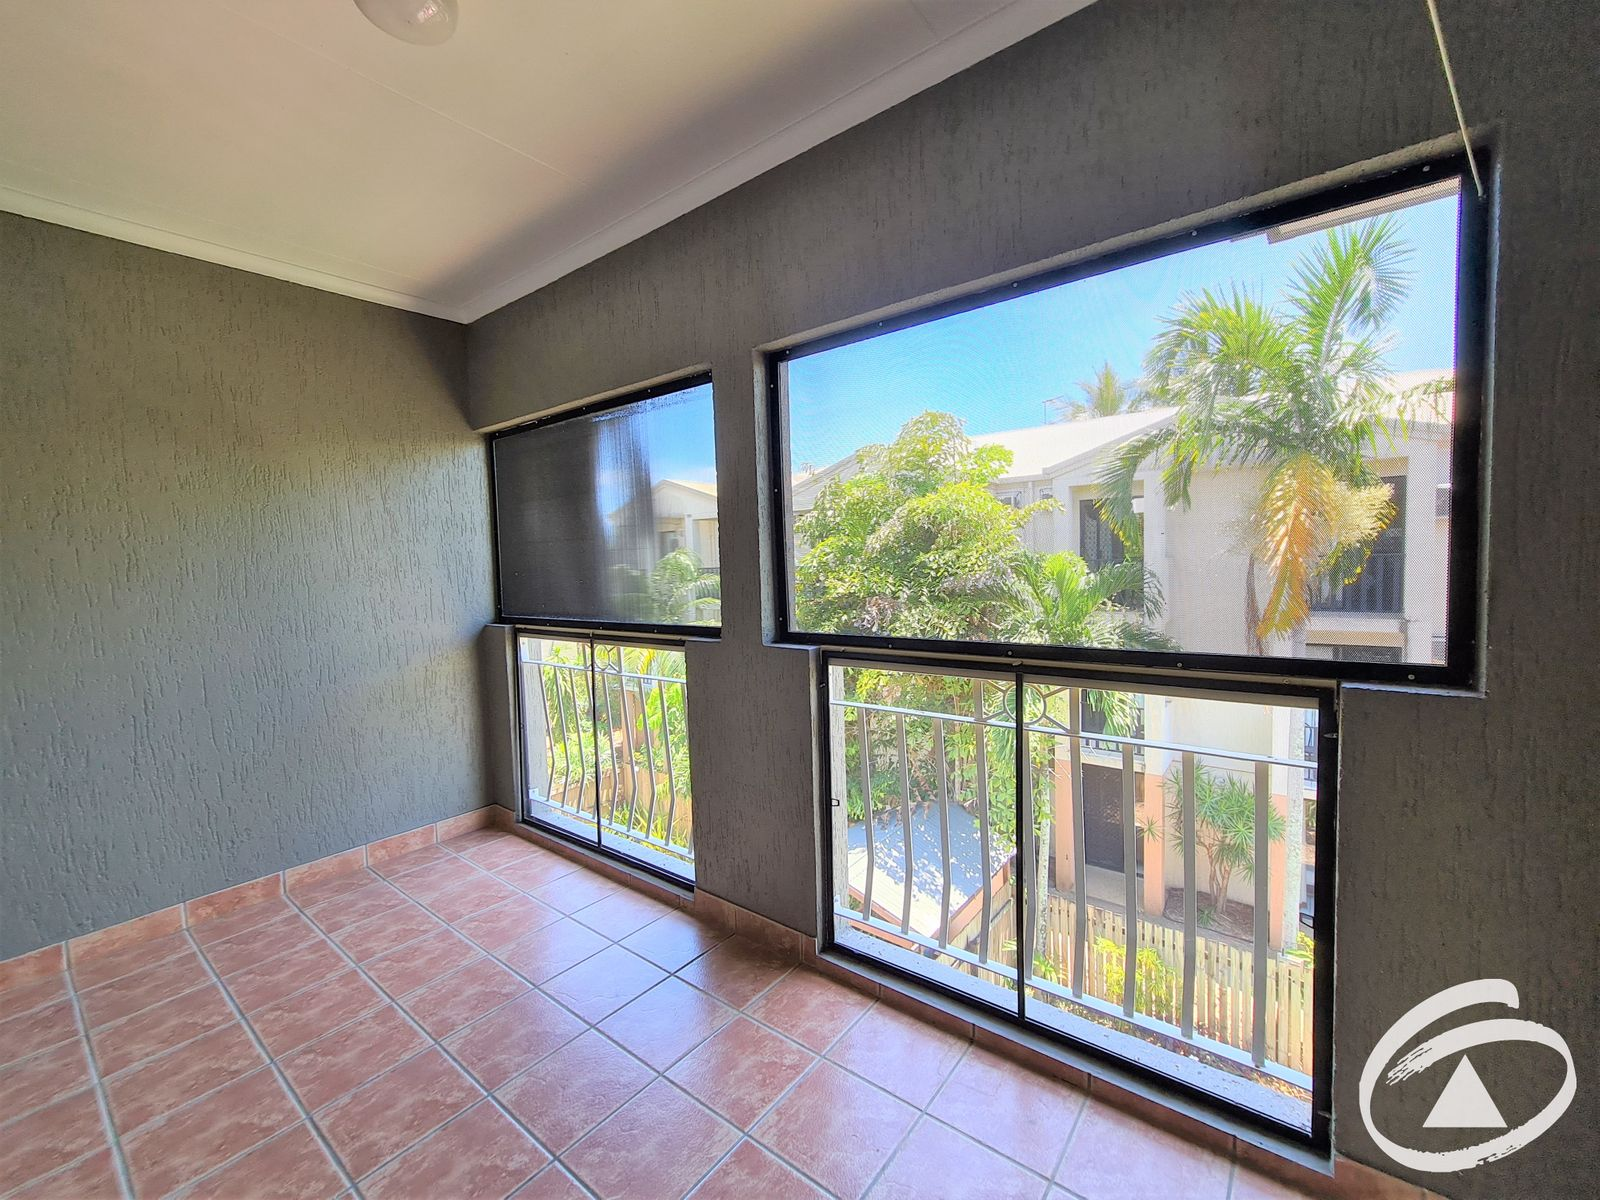 10/56 Cairns Street, Cairns North, QLD 4870